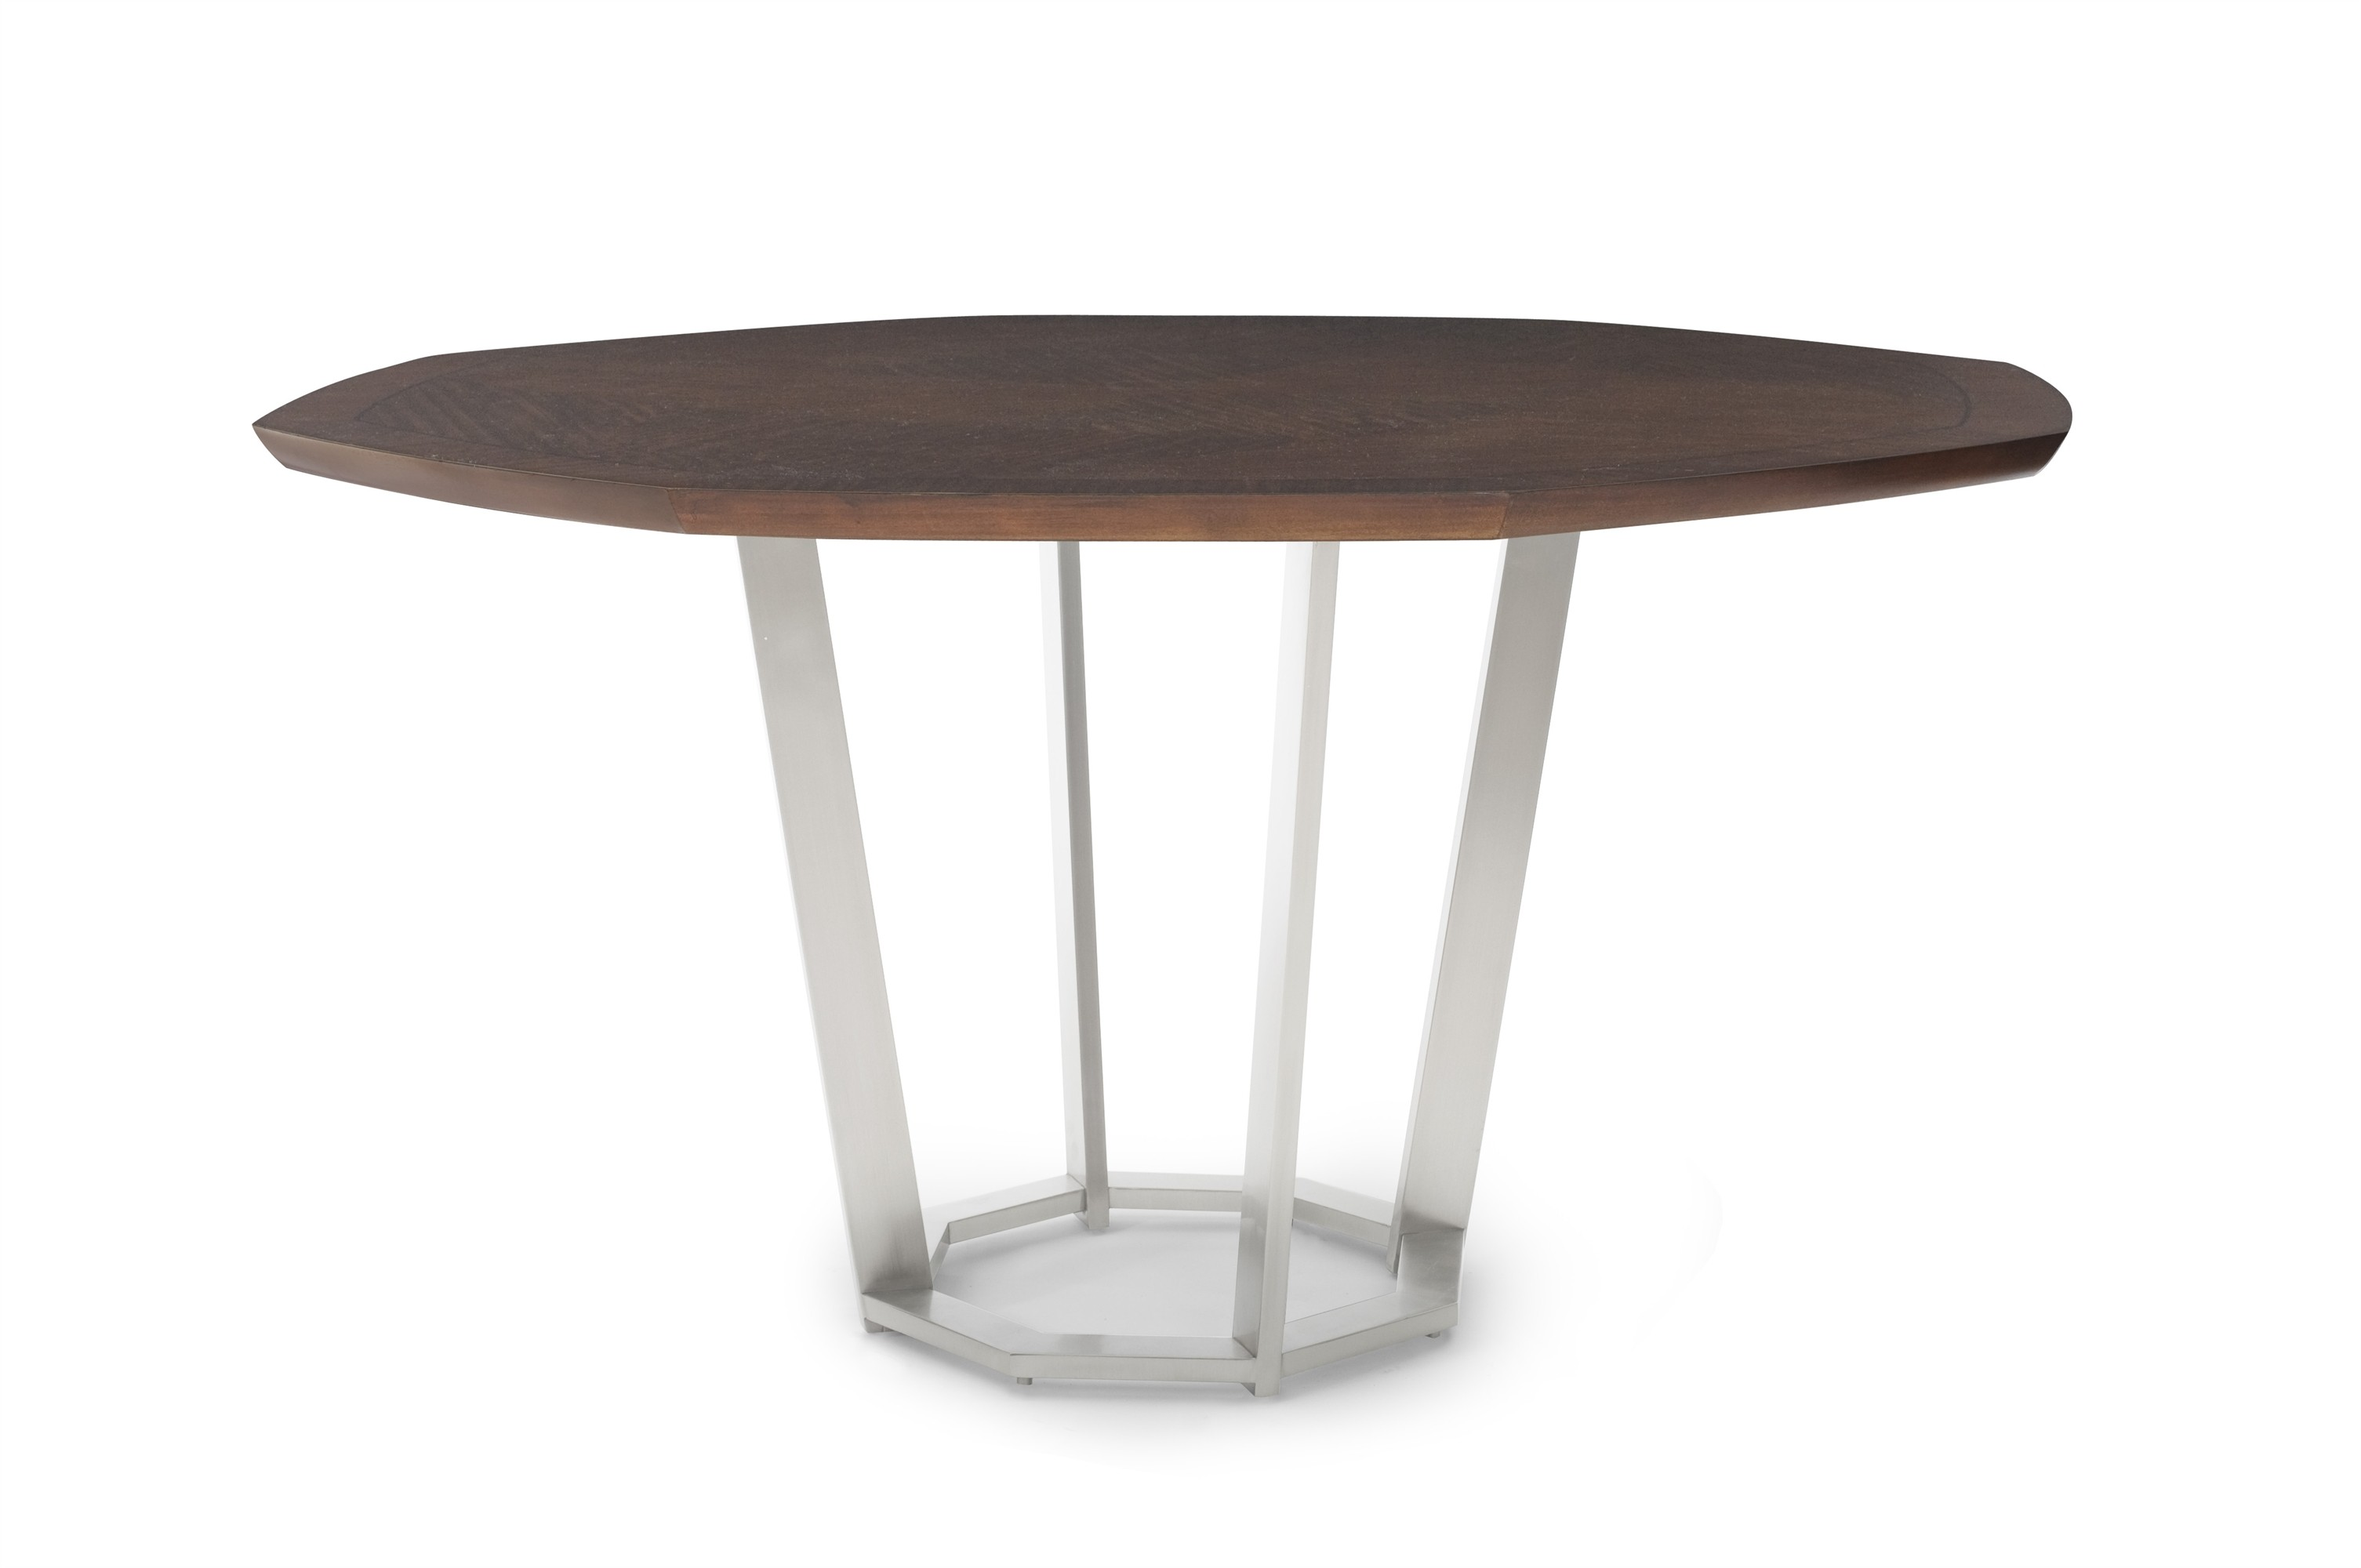 Sunburst Dining Table With Metal Base